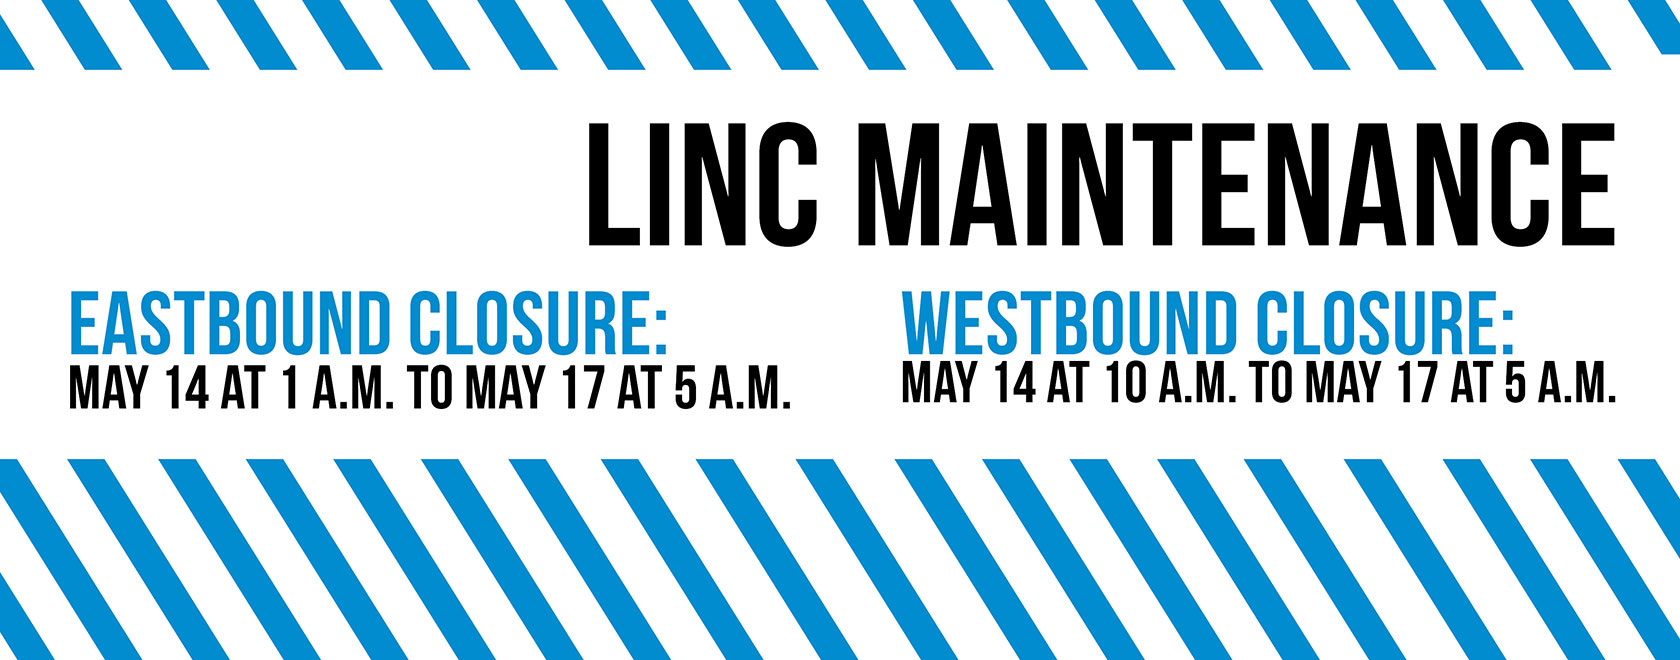 Linc maintenance May 14 to 17. Closures to both Eastbound and Westbounc